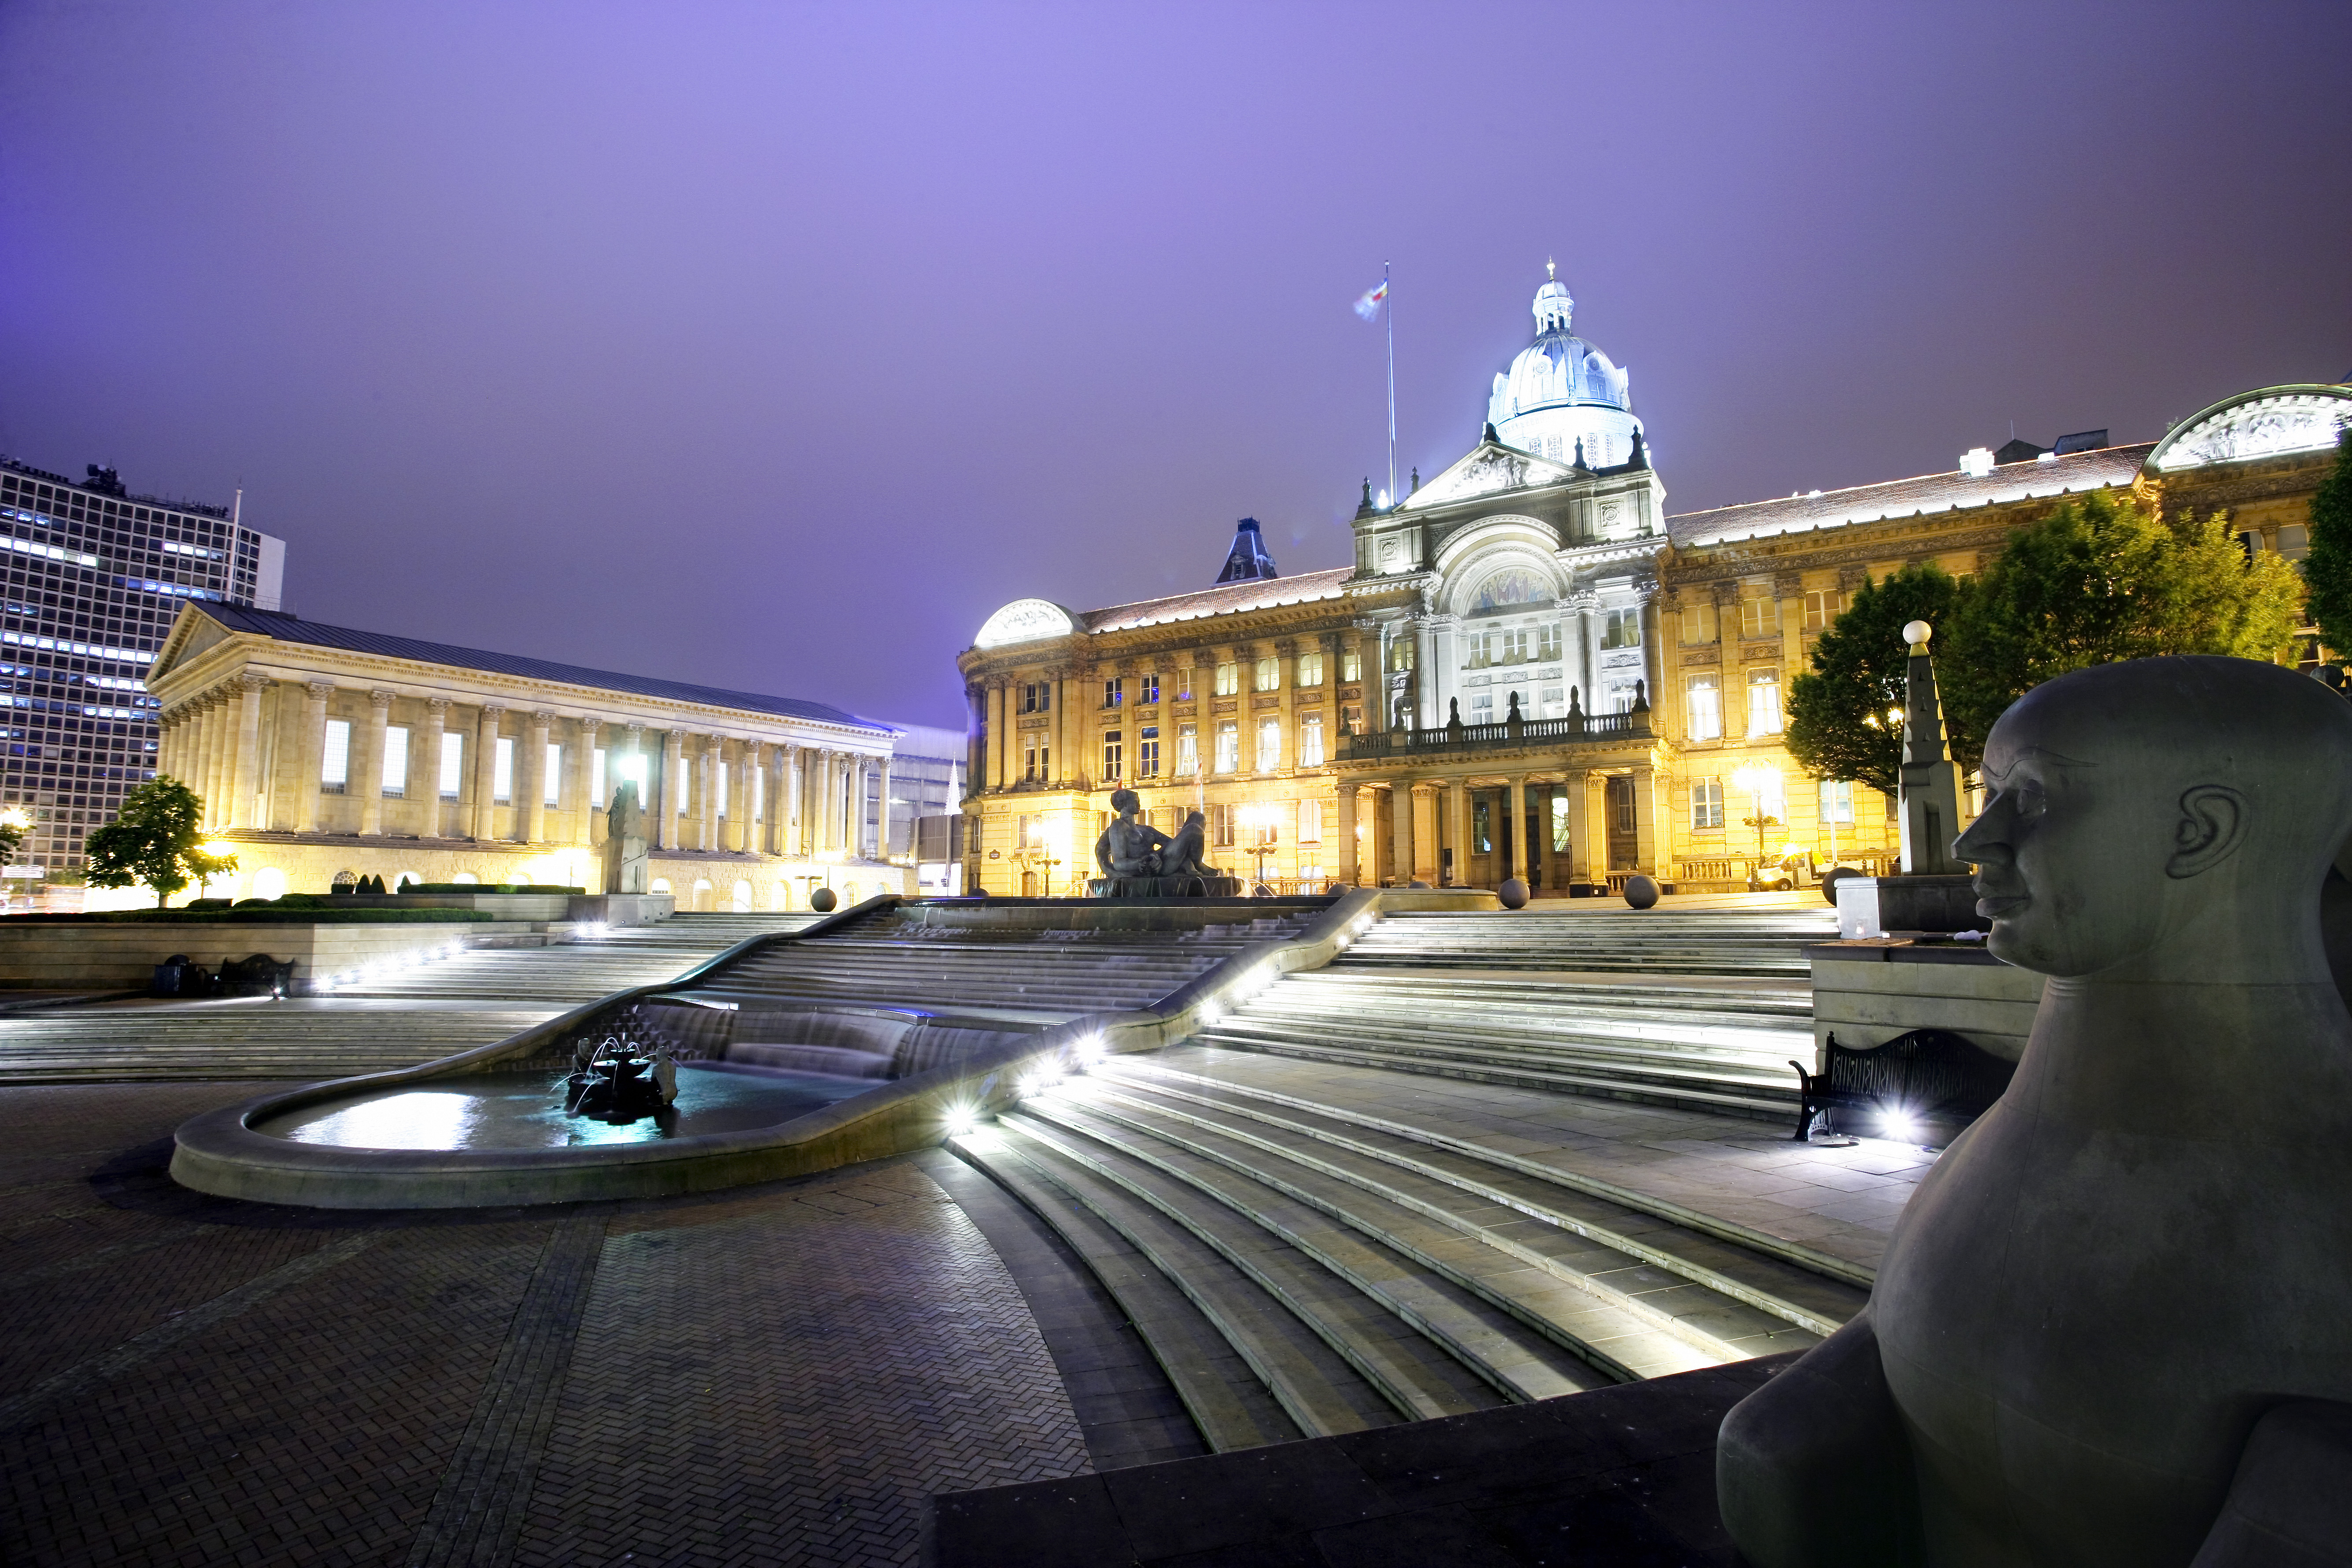 Victoria Square and Birmingham City Council House and Town Hall at dusk